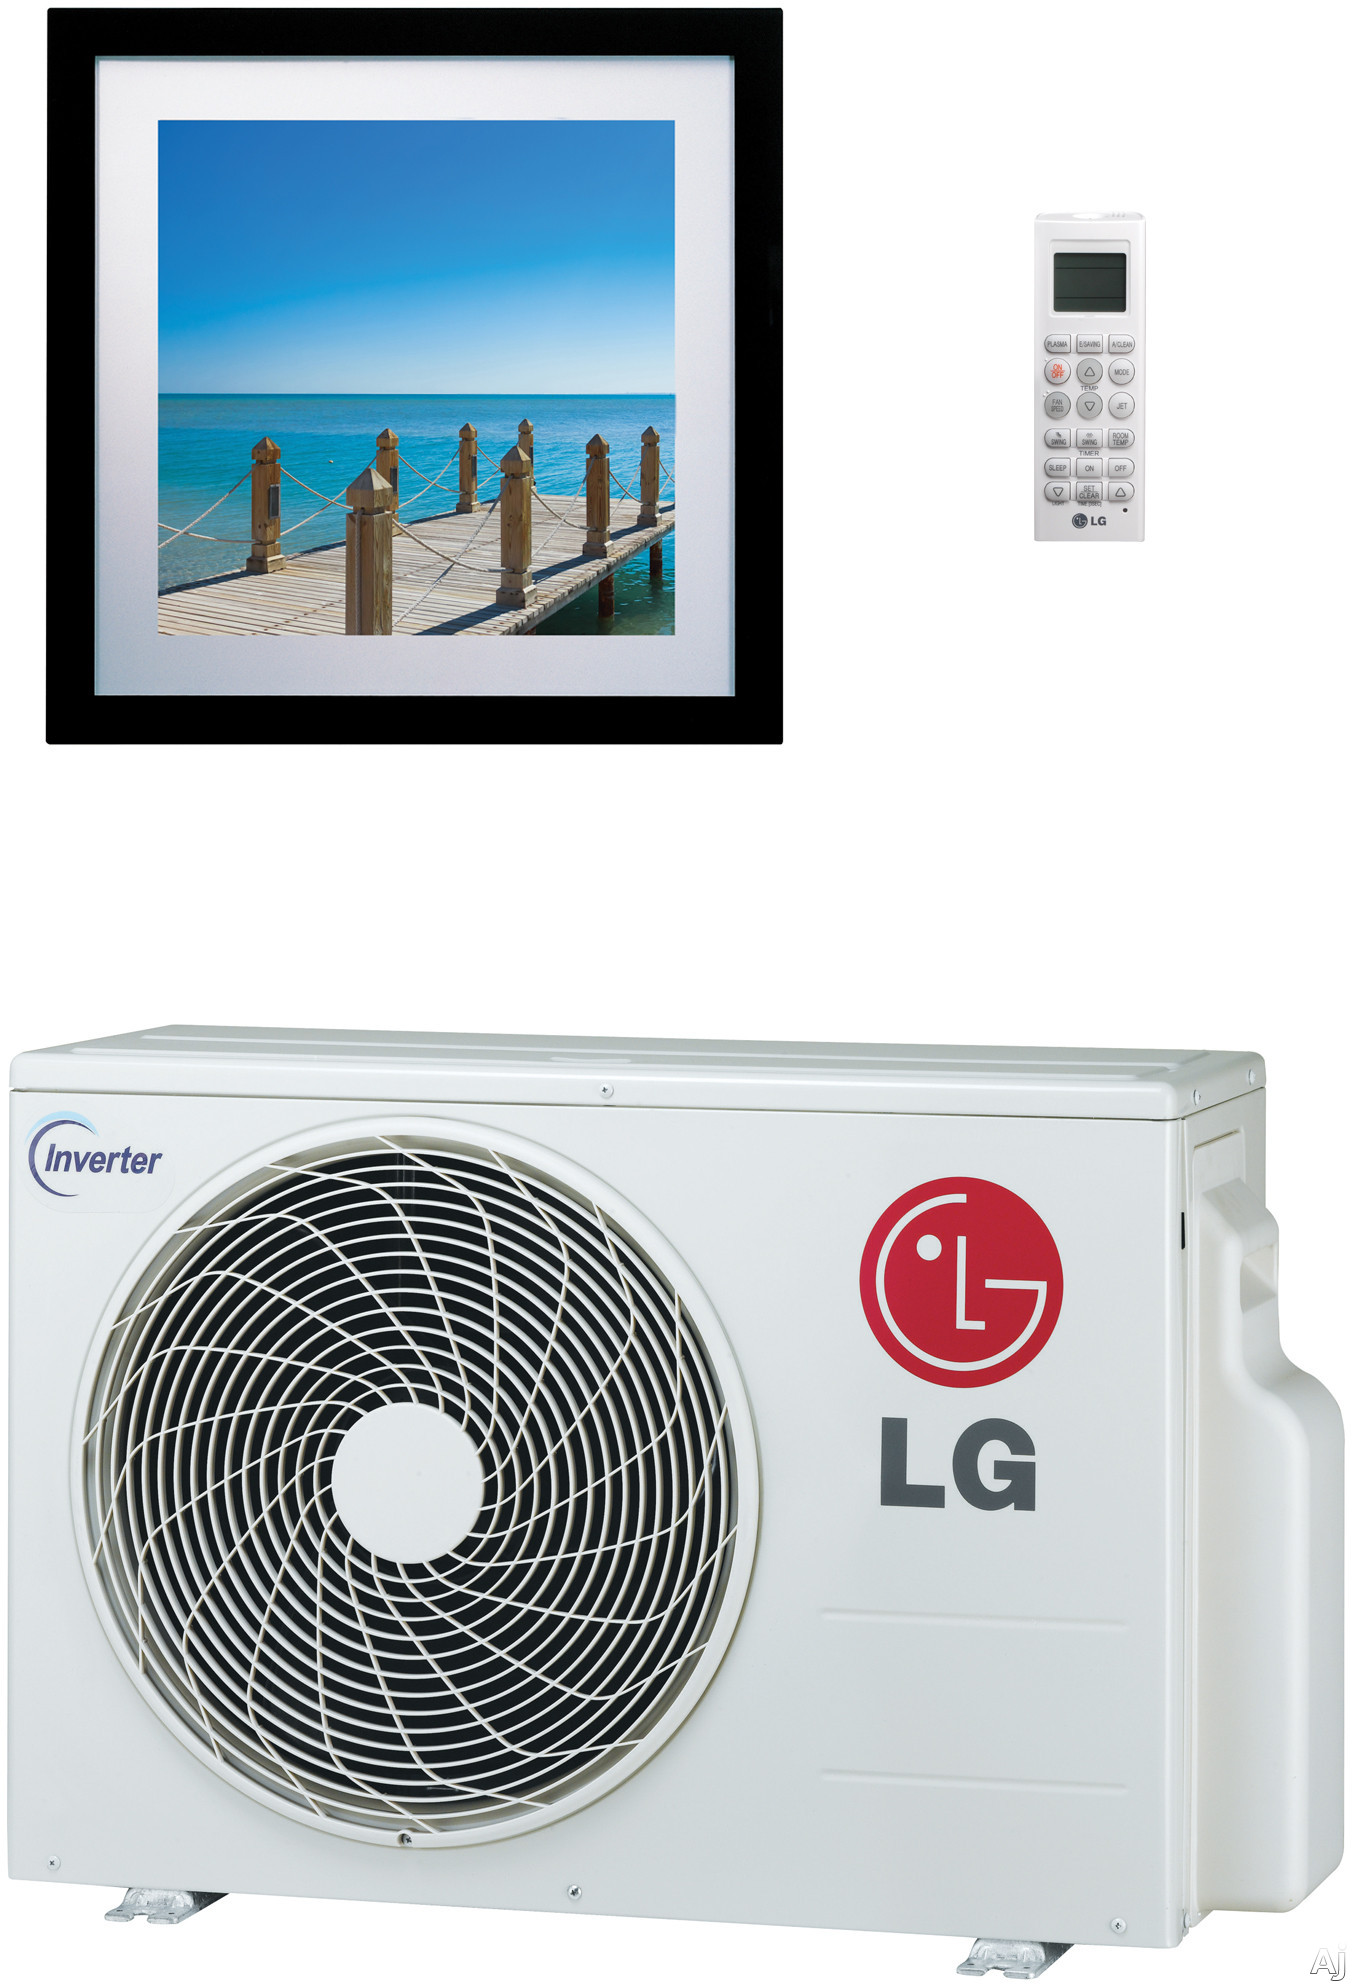 Lg La090hvp 9 000 Btu Single Zone Wall Mount Ductless Split